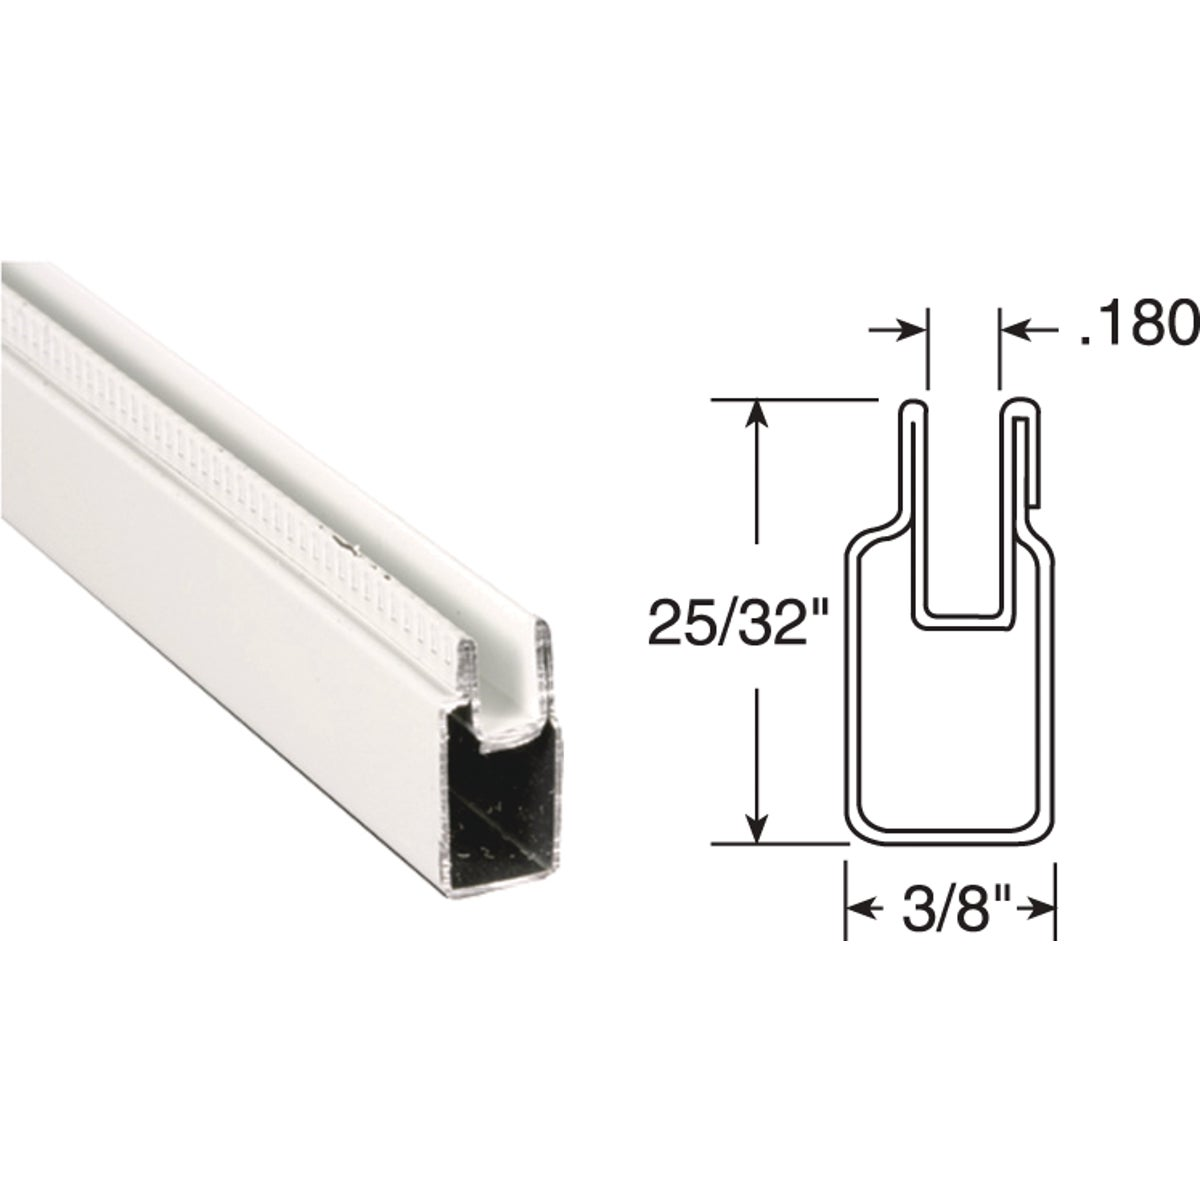 3/8X25/32X94WHT WN FRAME - PL14157 by Prime Line Products